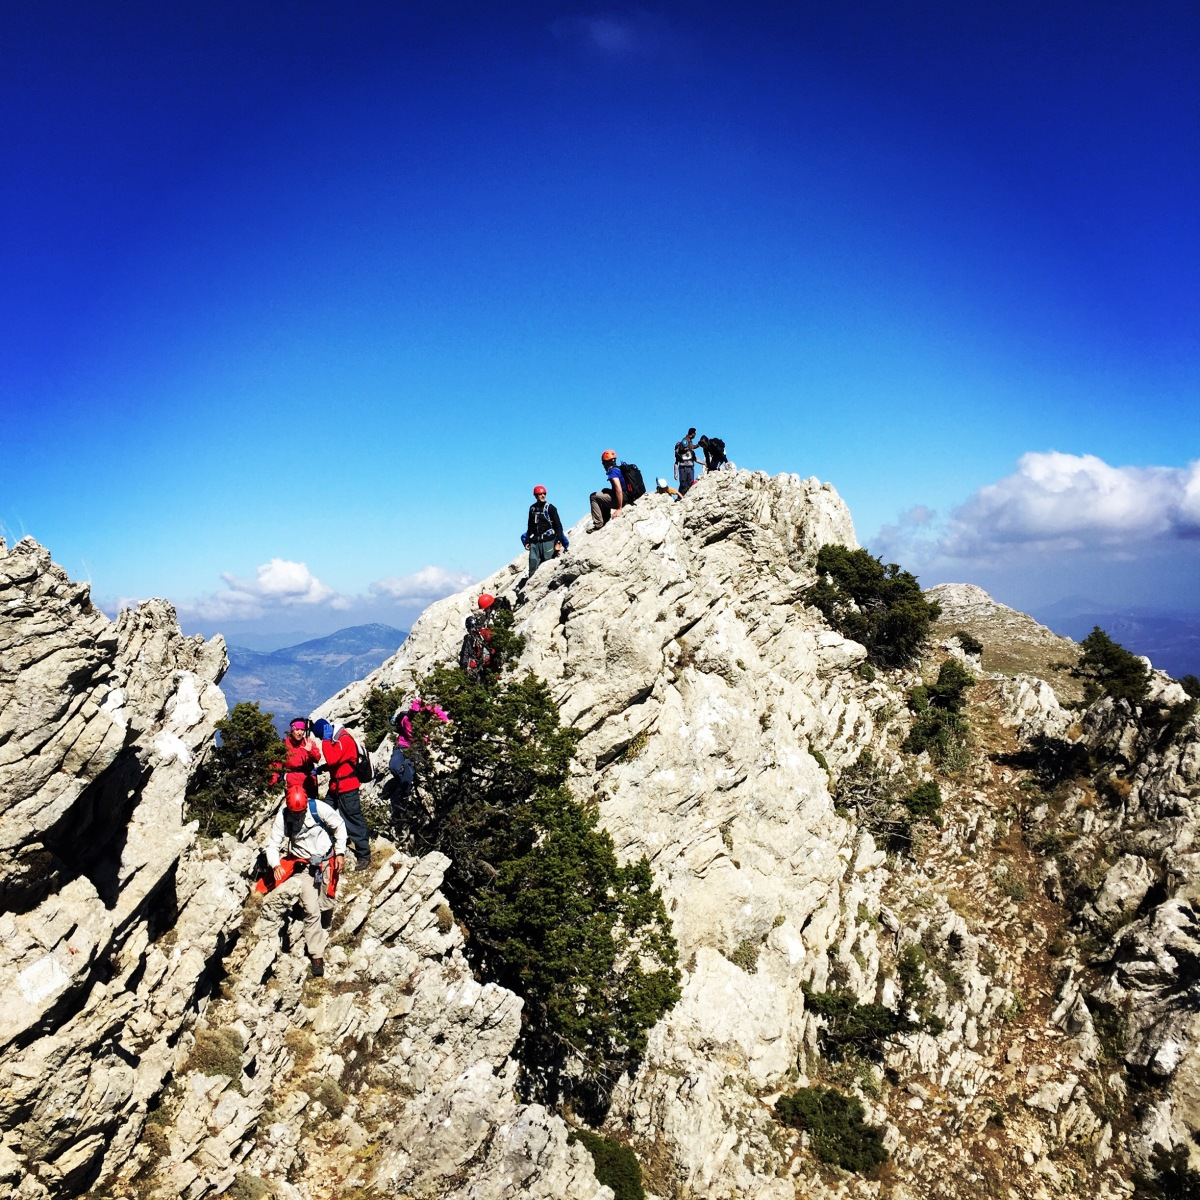 Scrambling in Artemisio Mountain (Artemisio Arete)